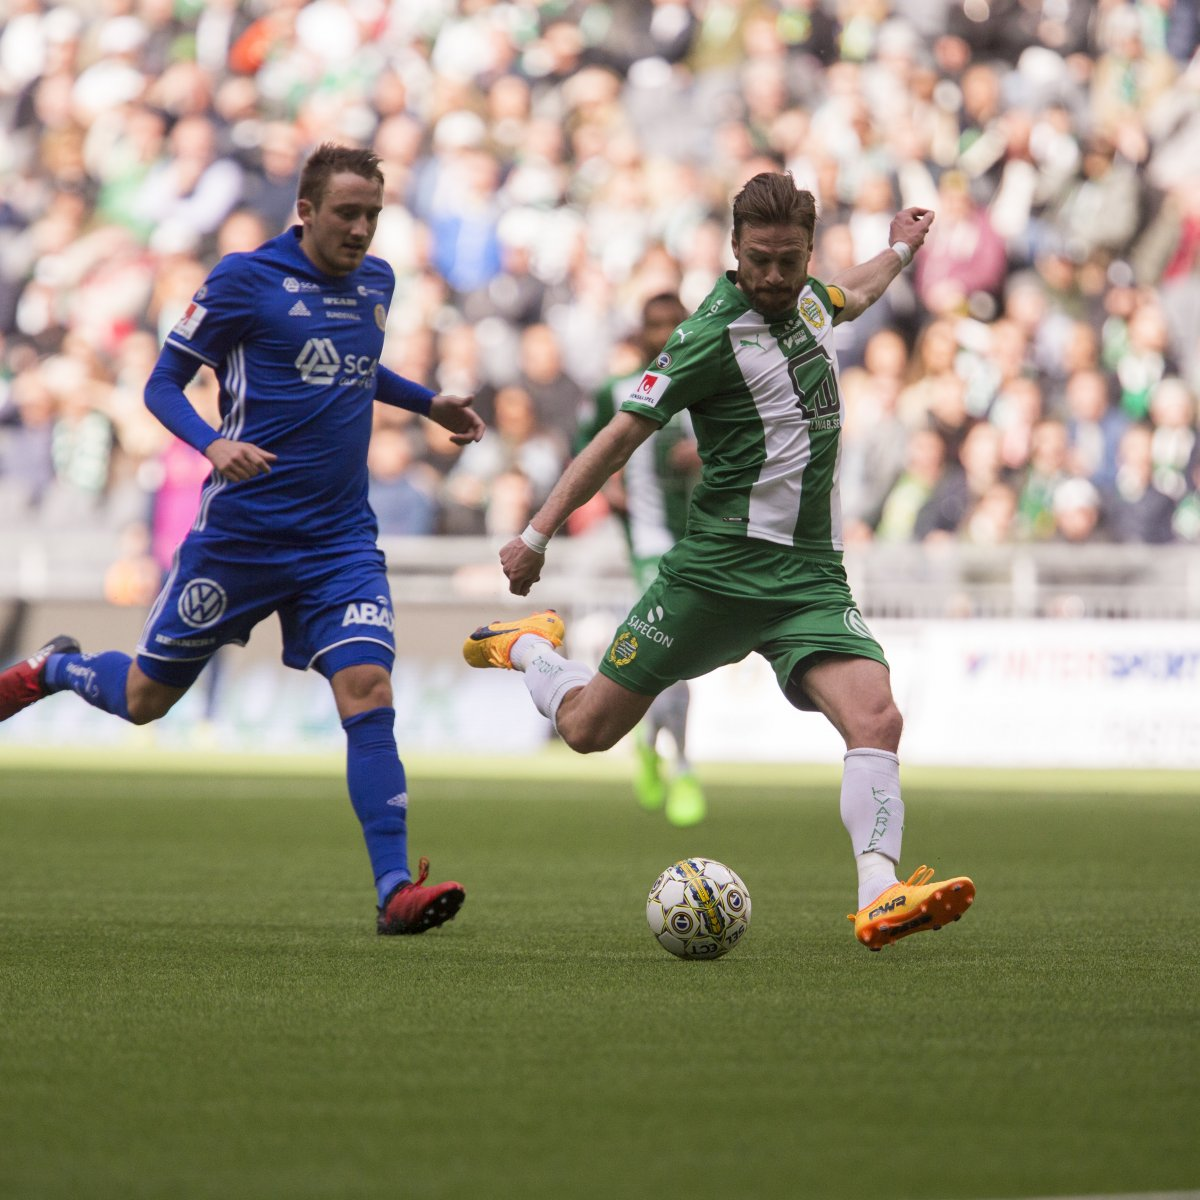 Hammarby soccer player about to kick the ball